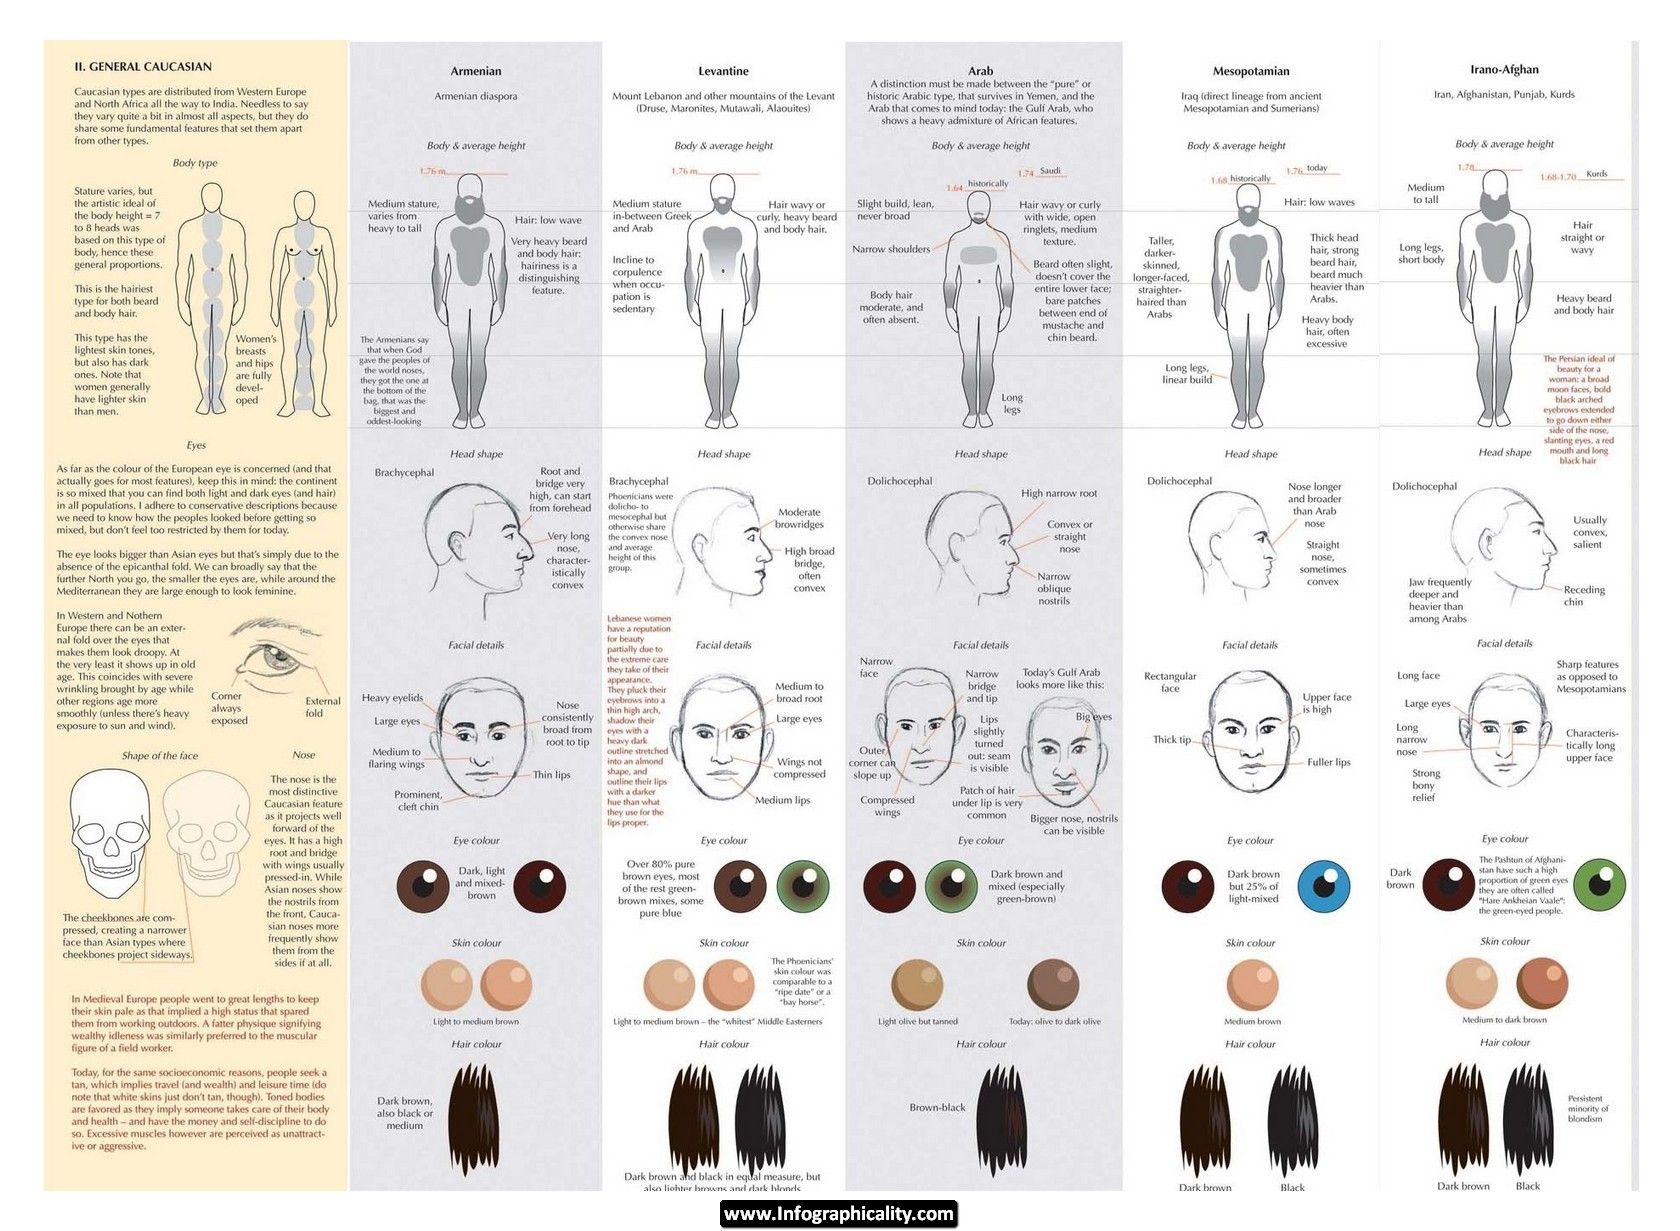 Drawing Caucasians Infographic